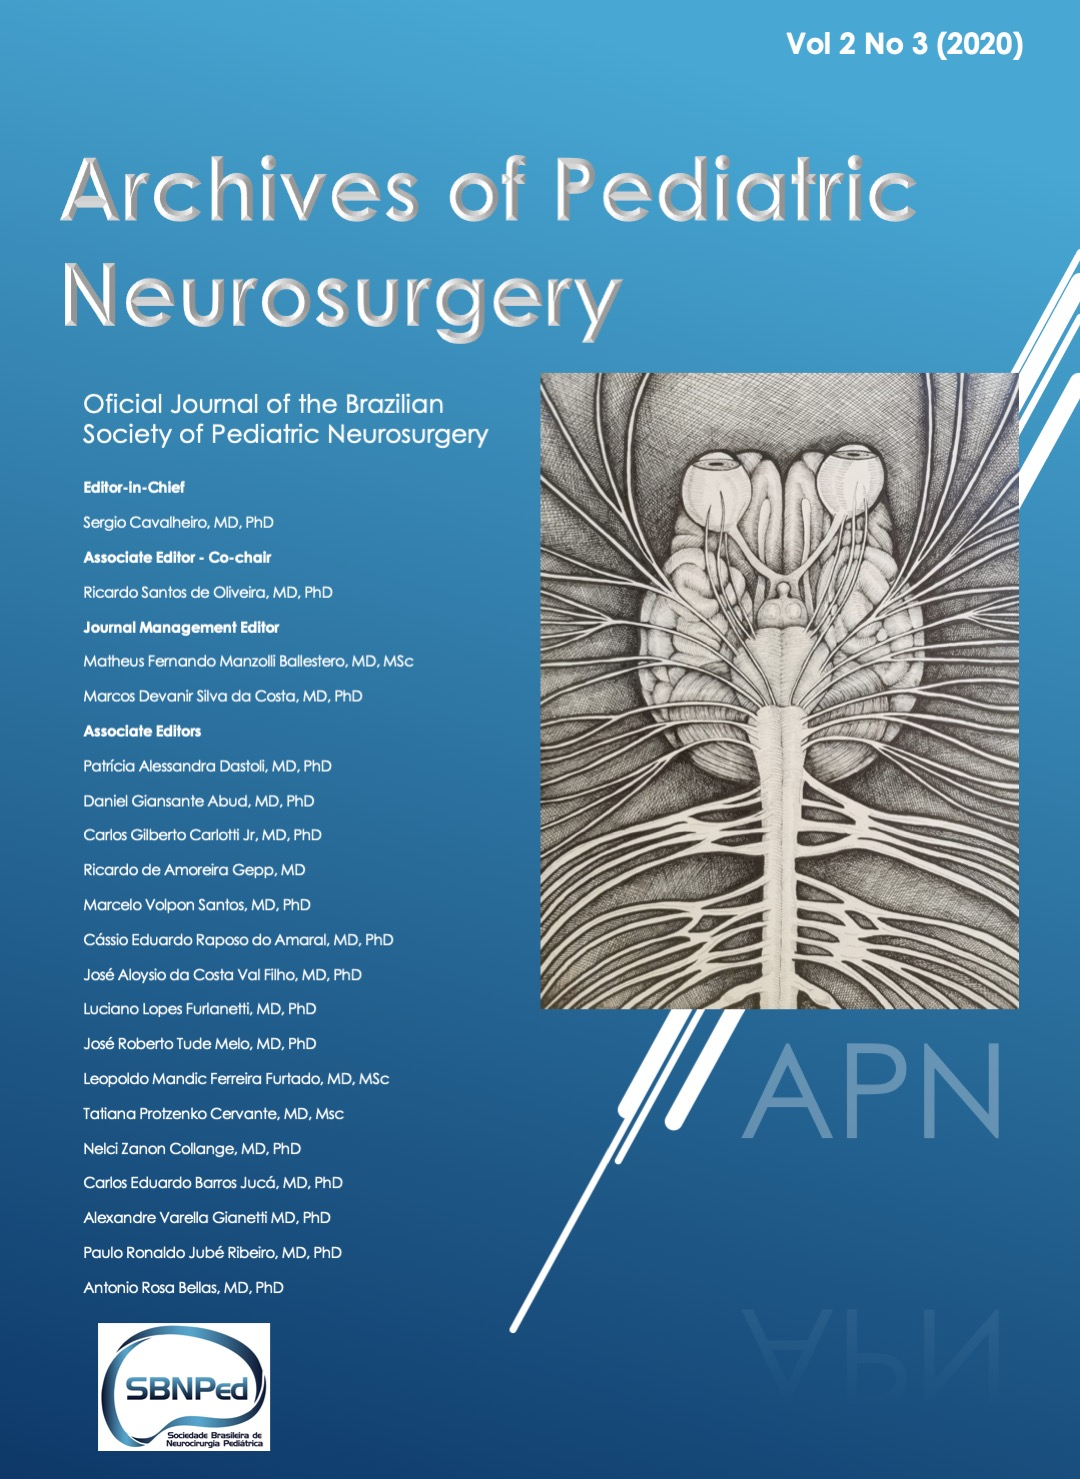 Nova edição da Archives of Pediatric Neurosurgery